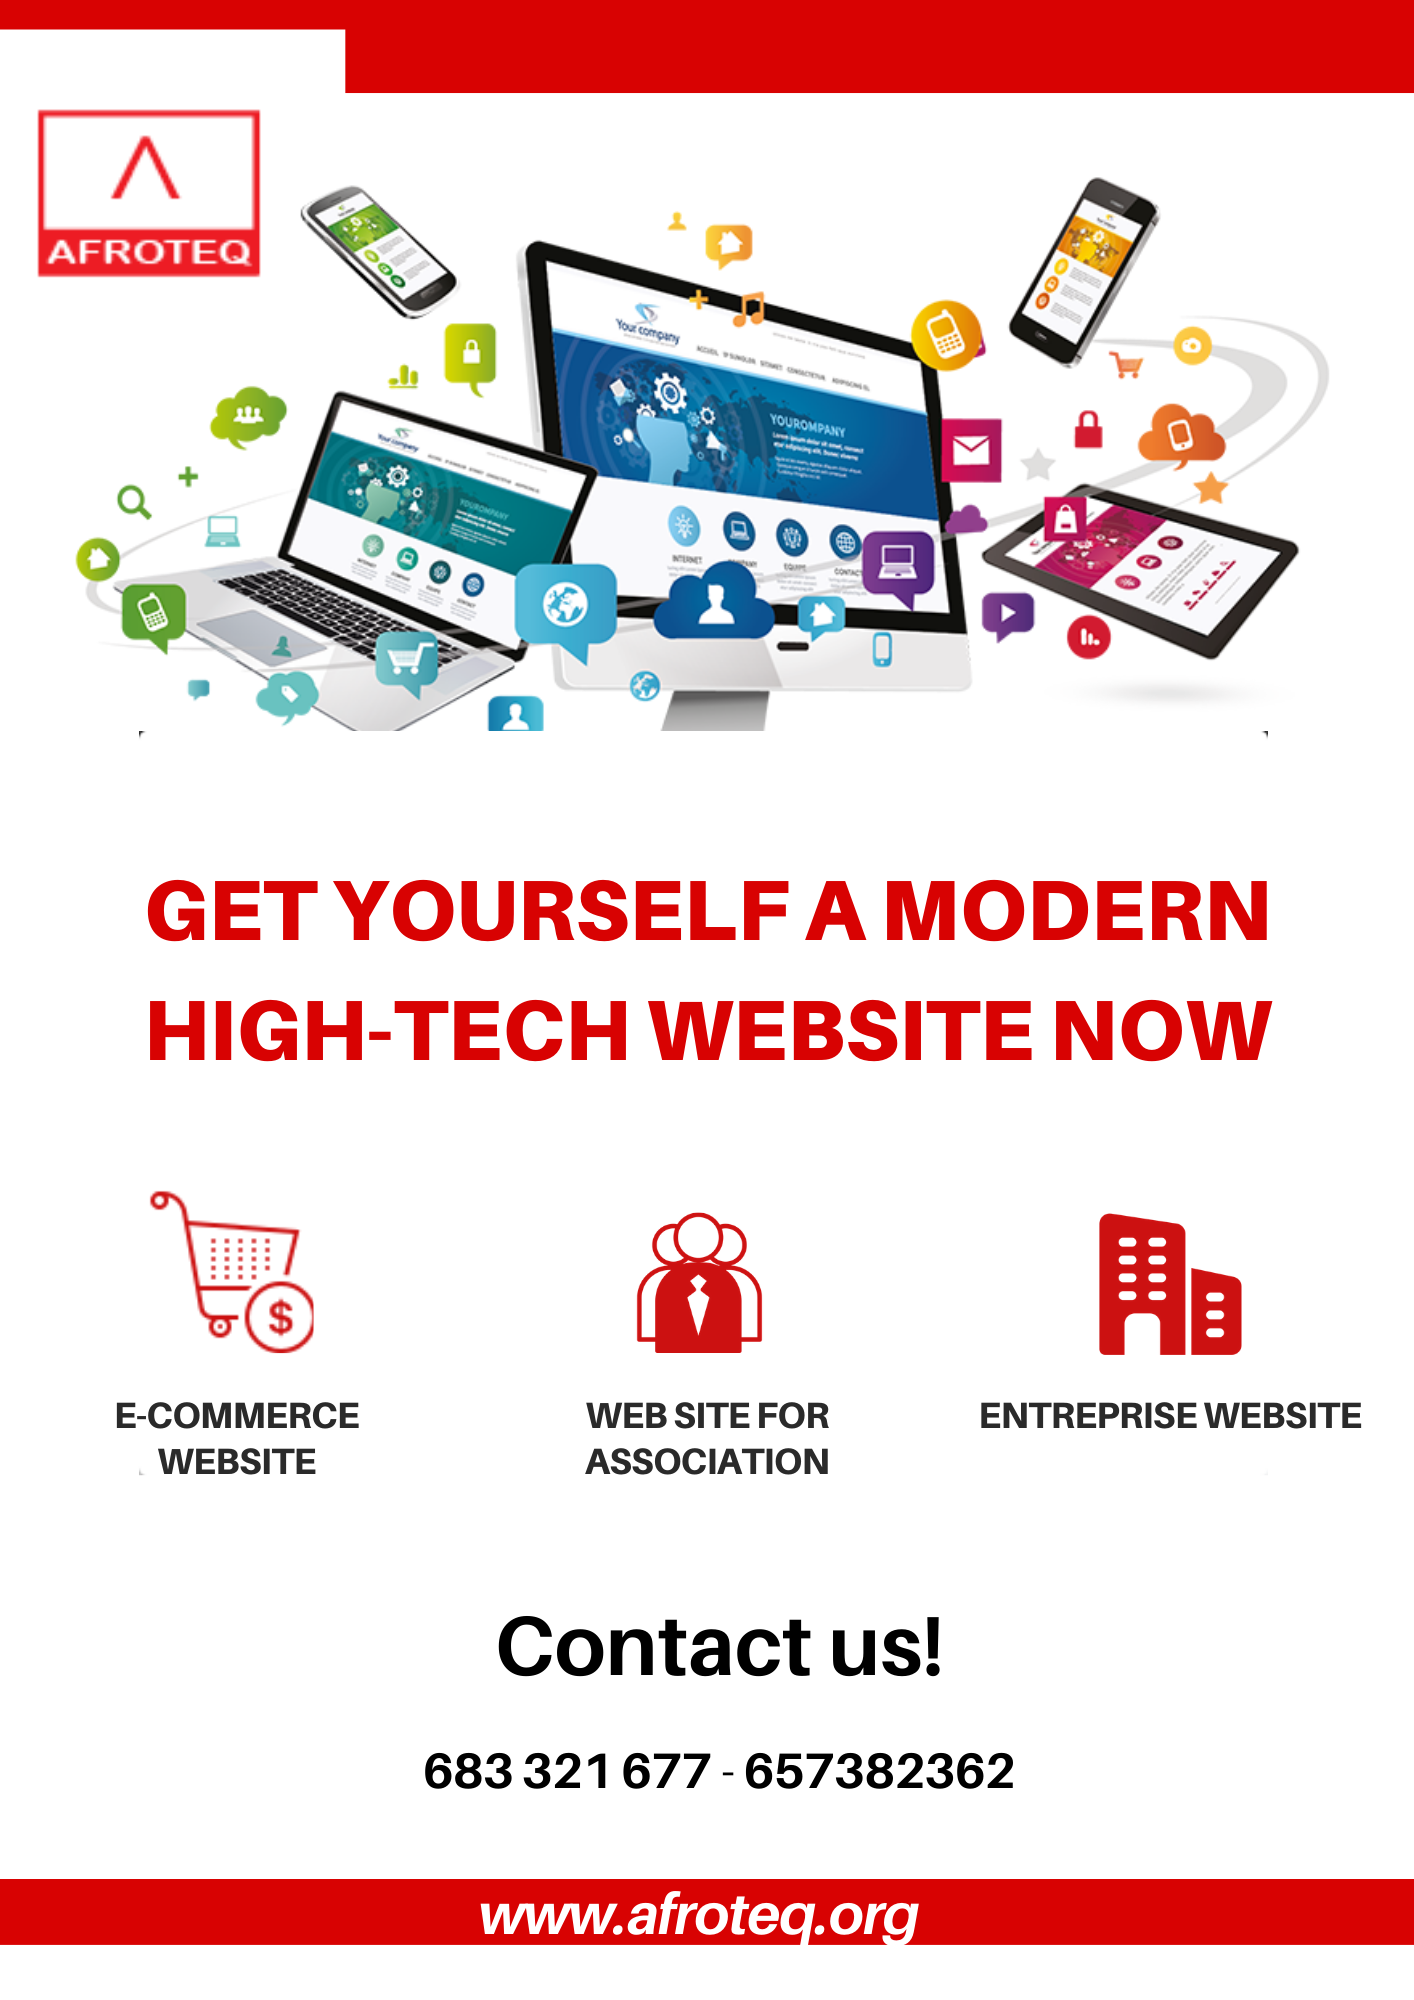 Afroteq Website Offer Flyer